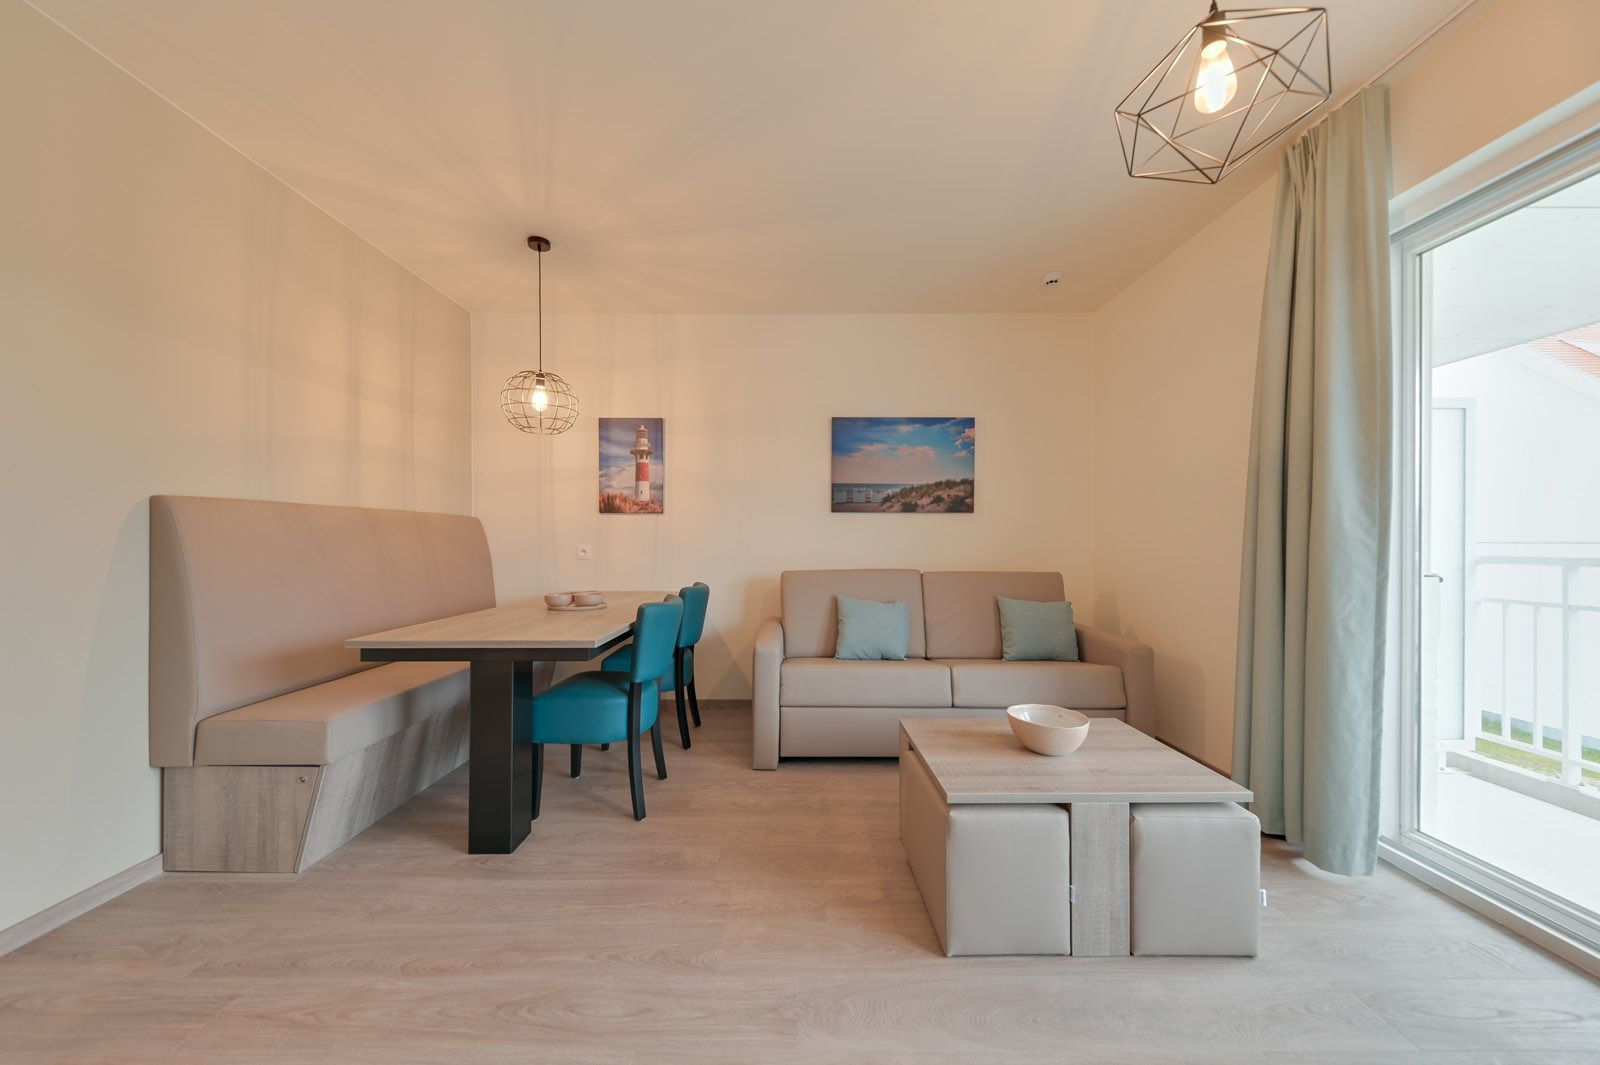 New Holiday Suite for 2 adults and 3 children with sofa bed